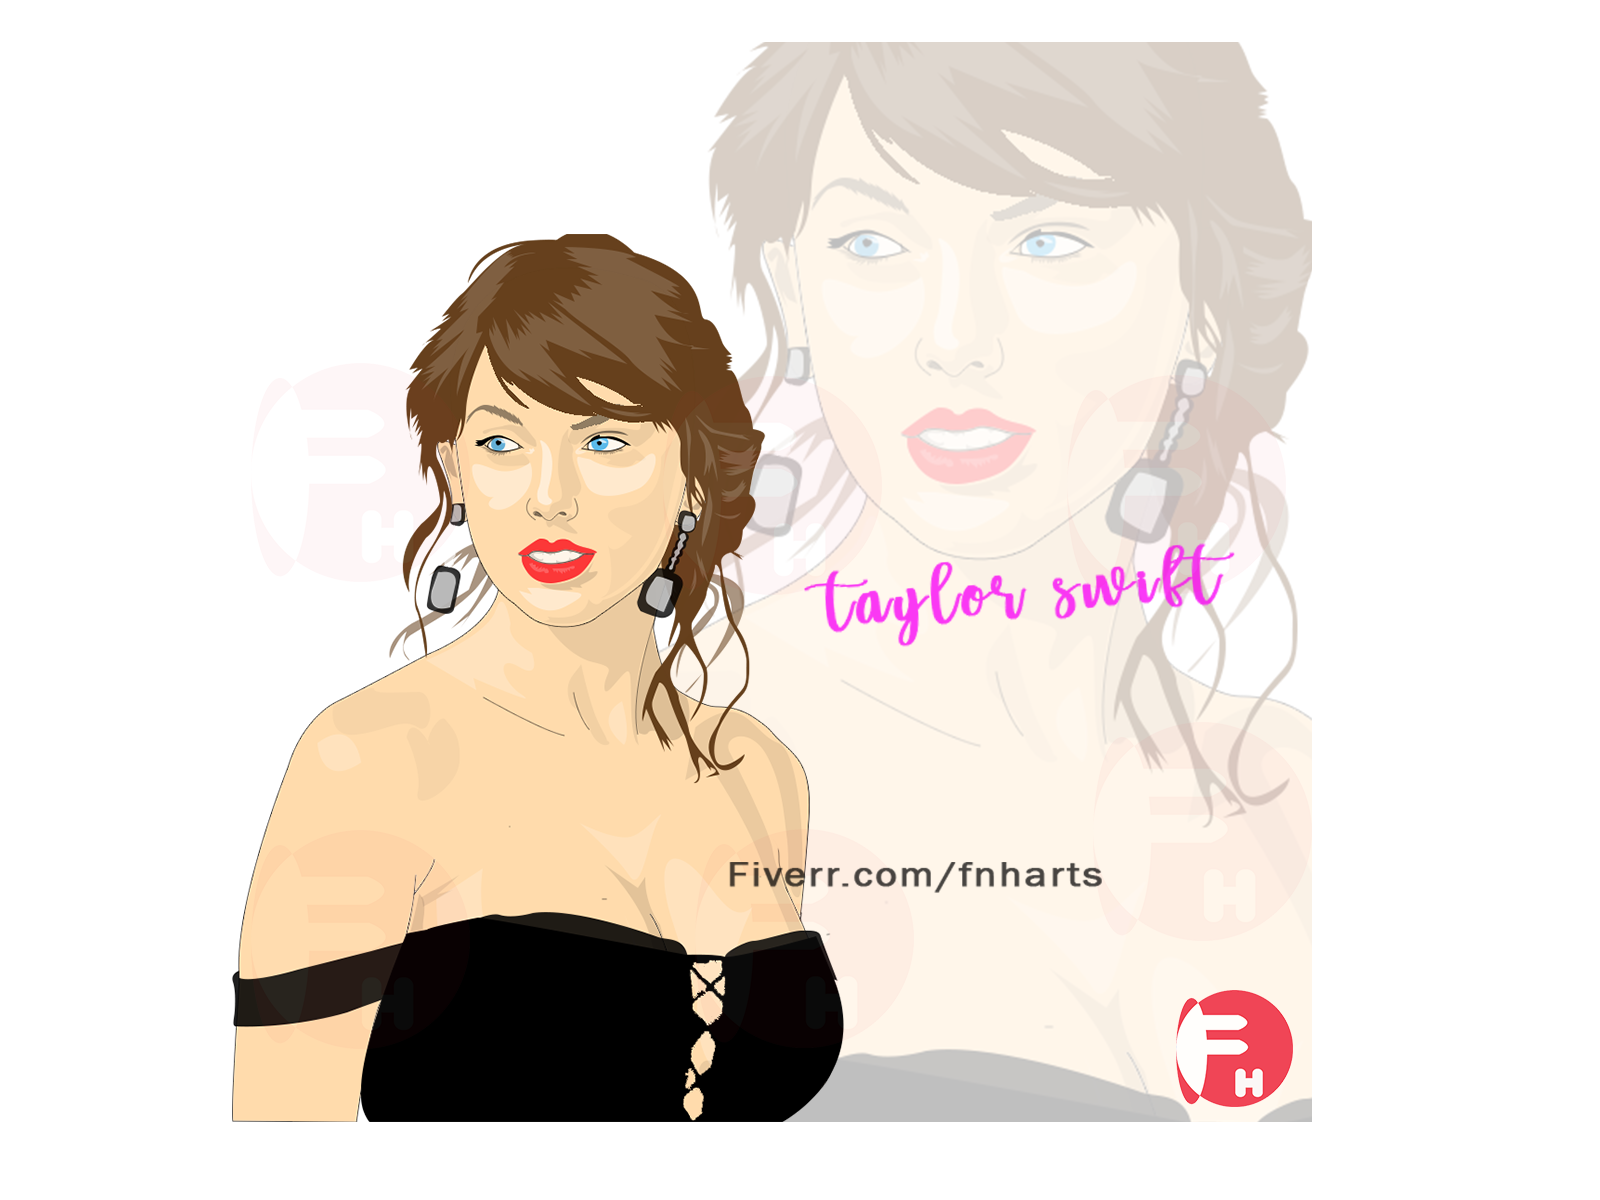 Taylor Swift Cartoon Portrait By Fnharts By Fnharts On Dribbble